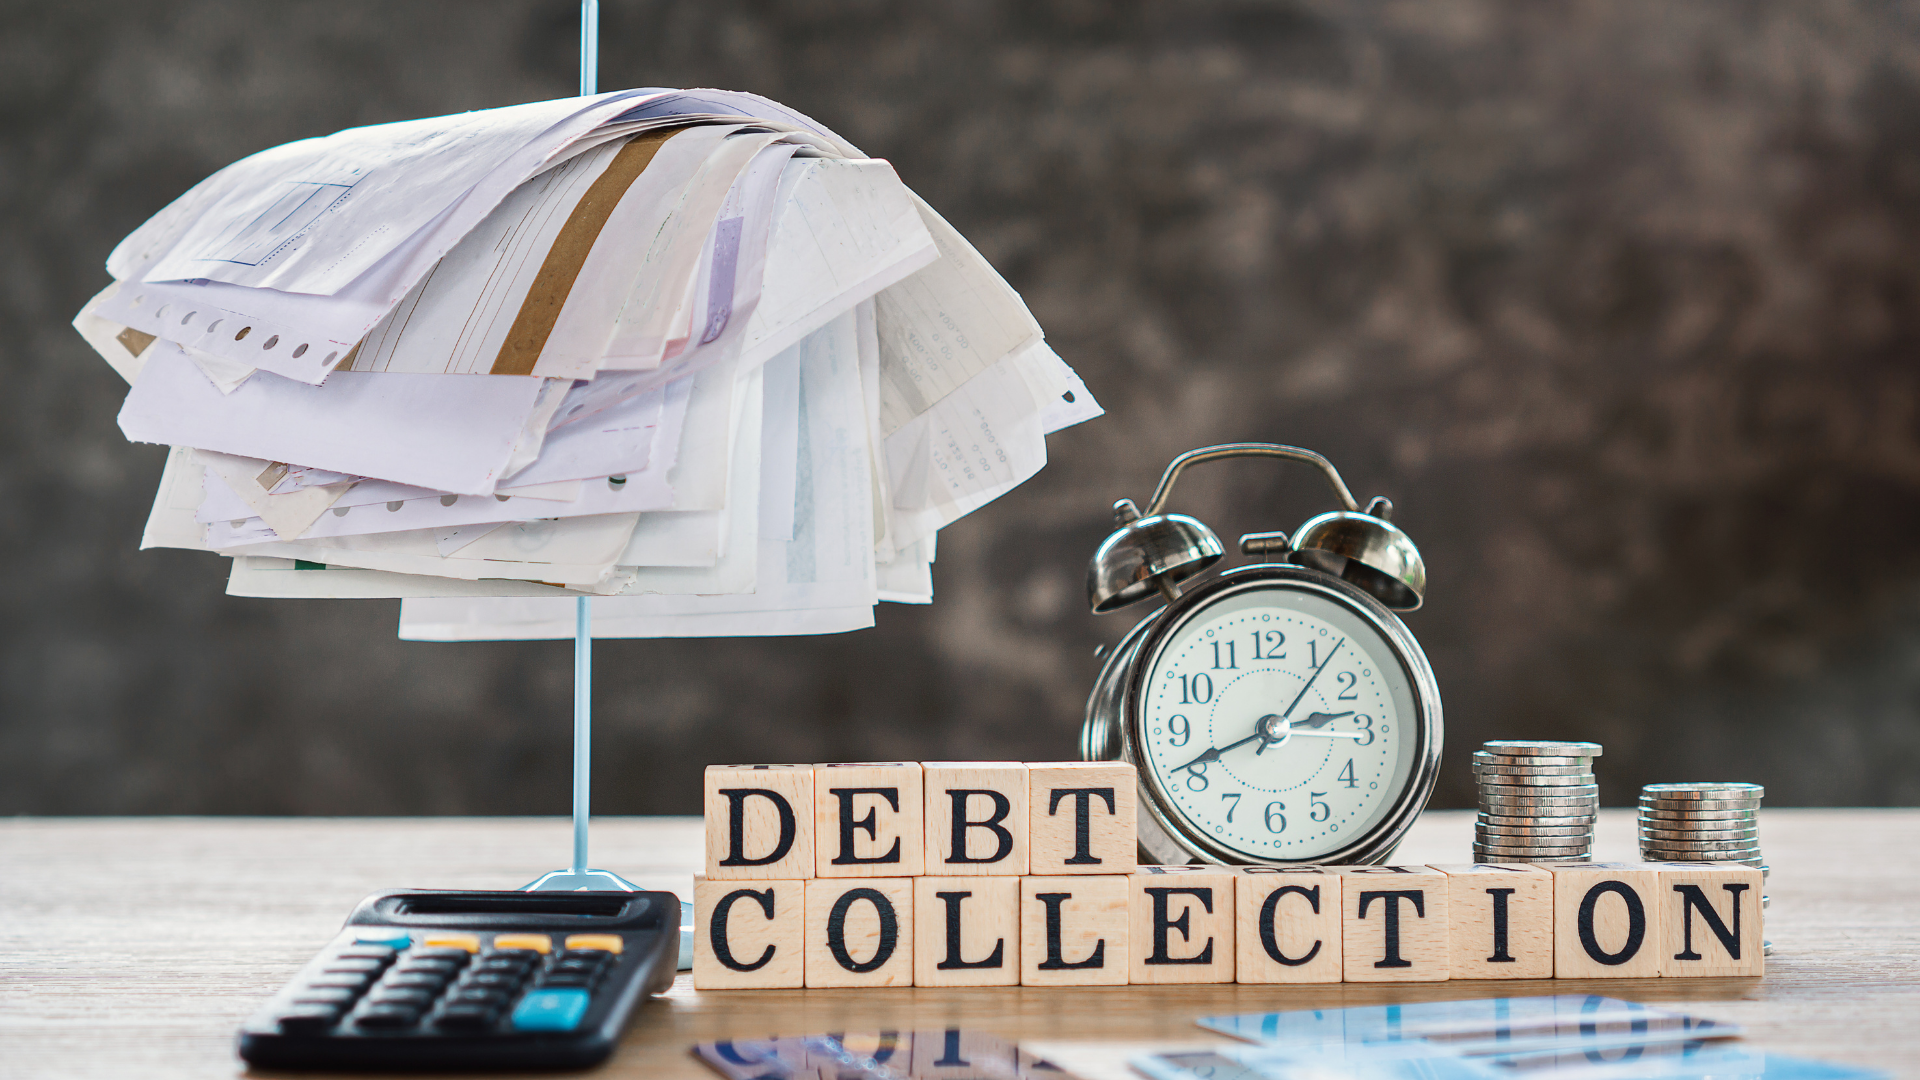 6 debt collection tips for small business owners